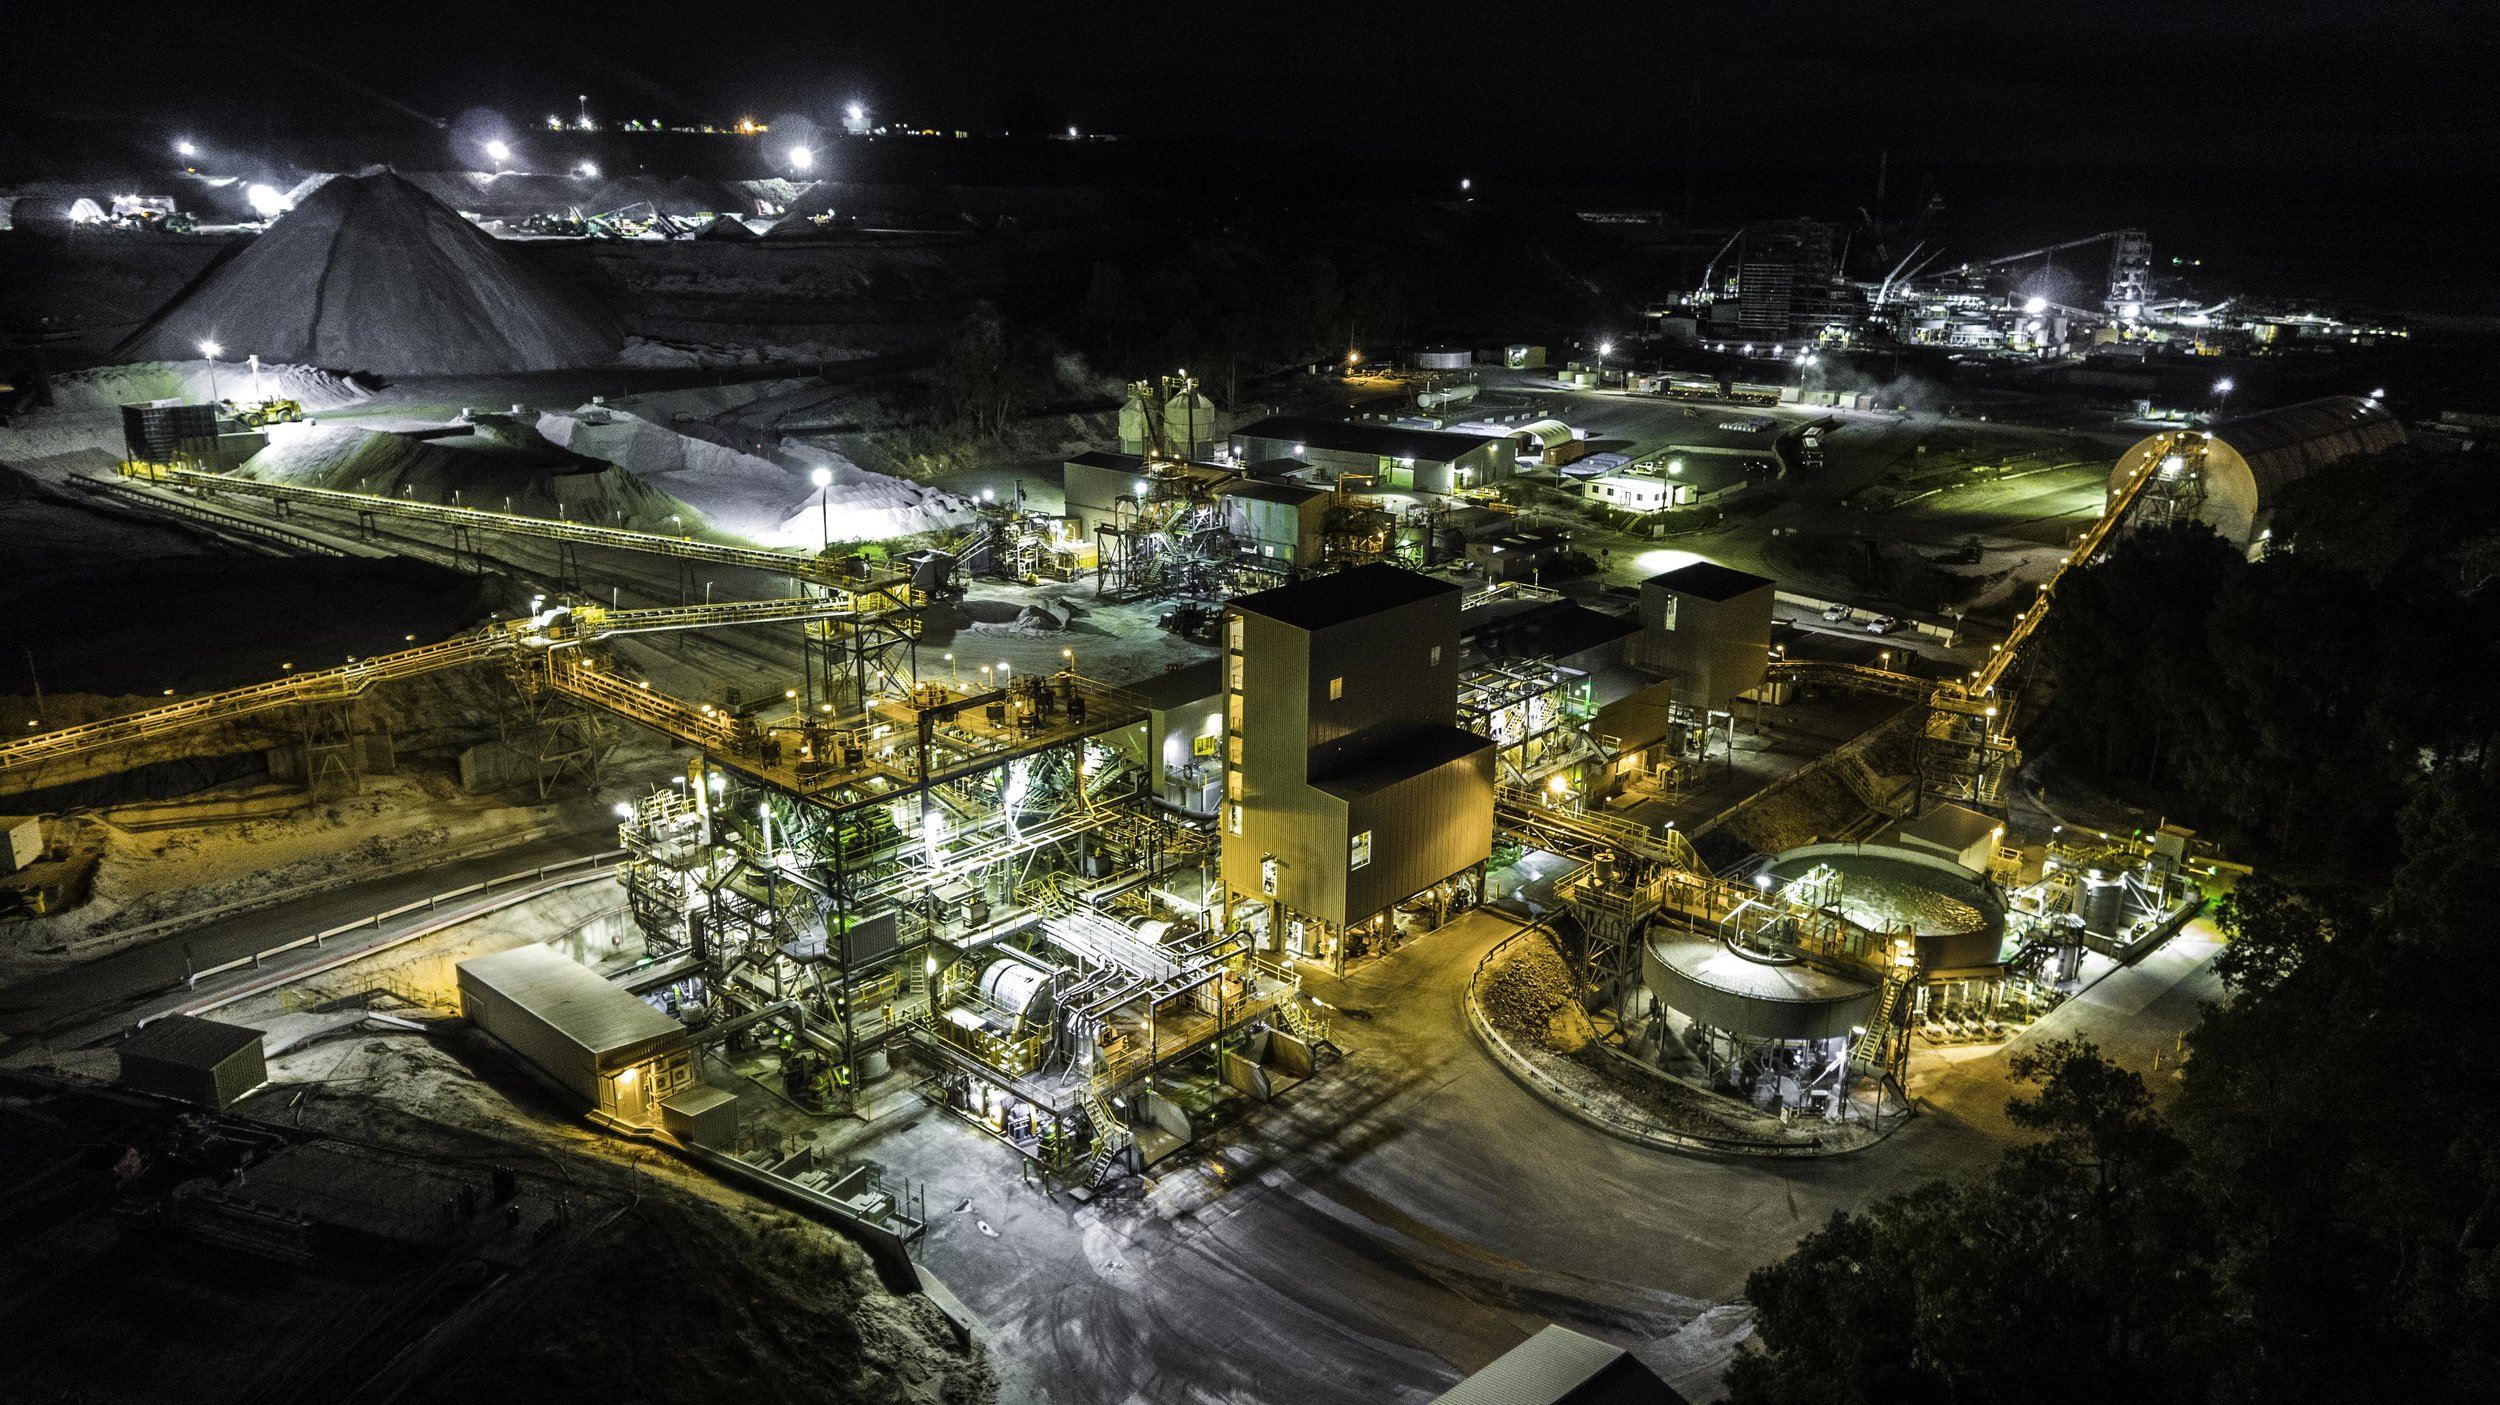 Talison Lithium CGP1 and Tech Grade Plant at Night lower res.jpg